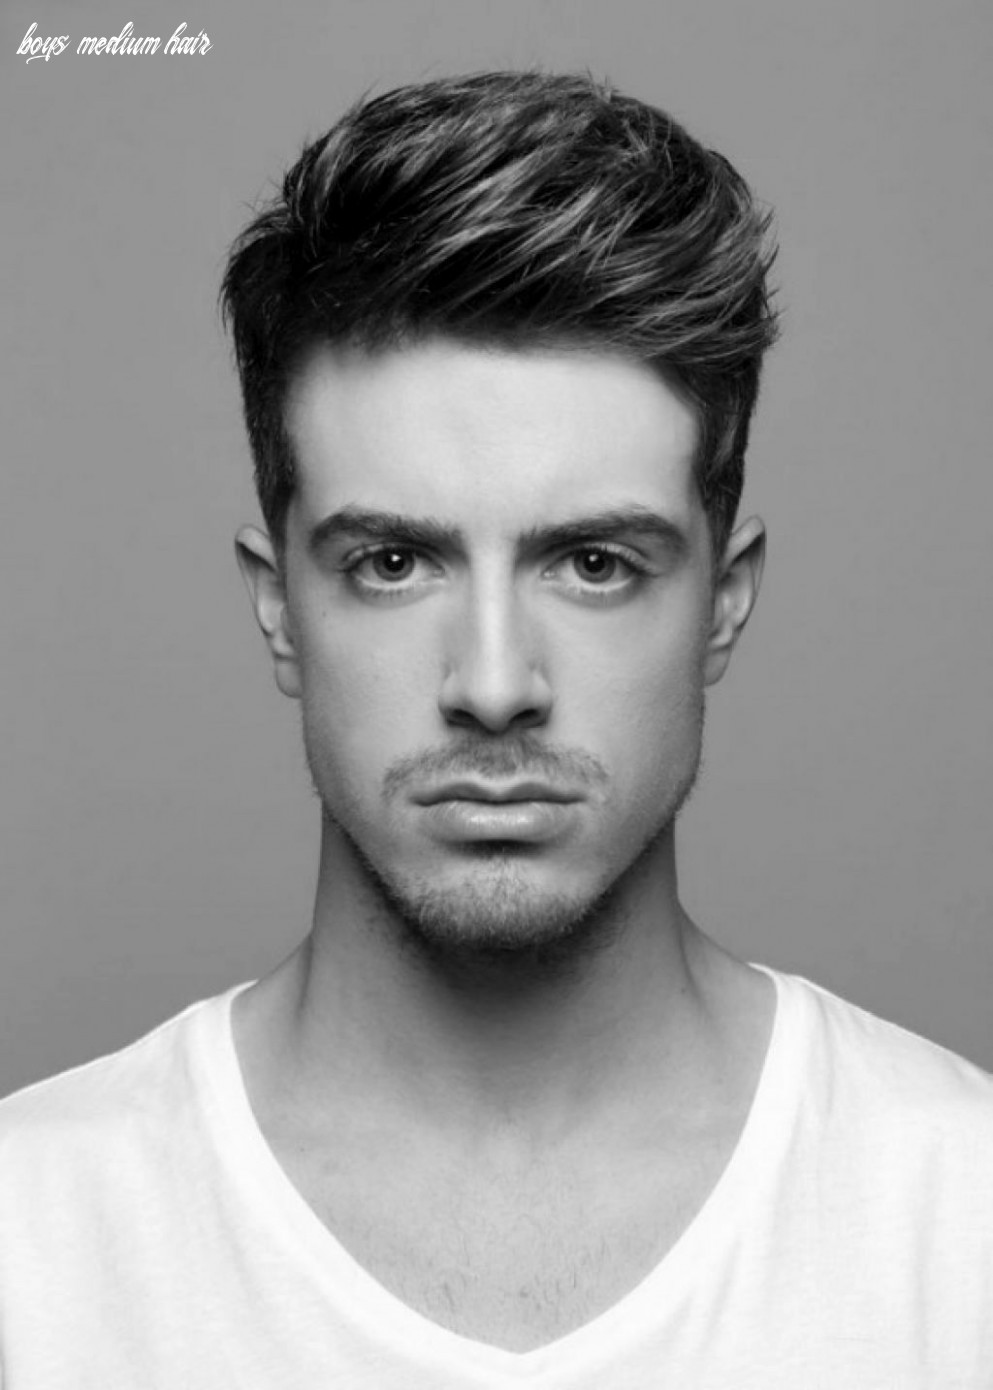 Awesome Hairstyle Men Awesome Hairstyles For Guys With Medium Hair ...